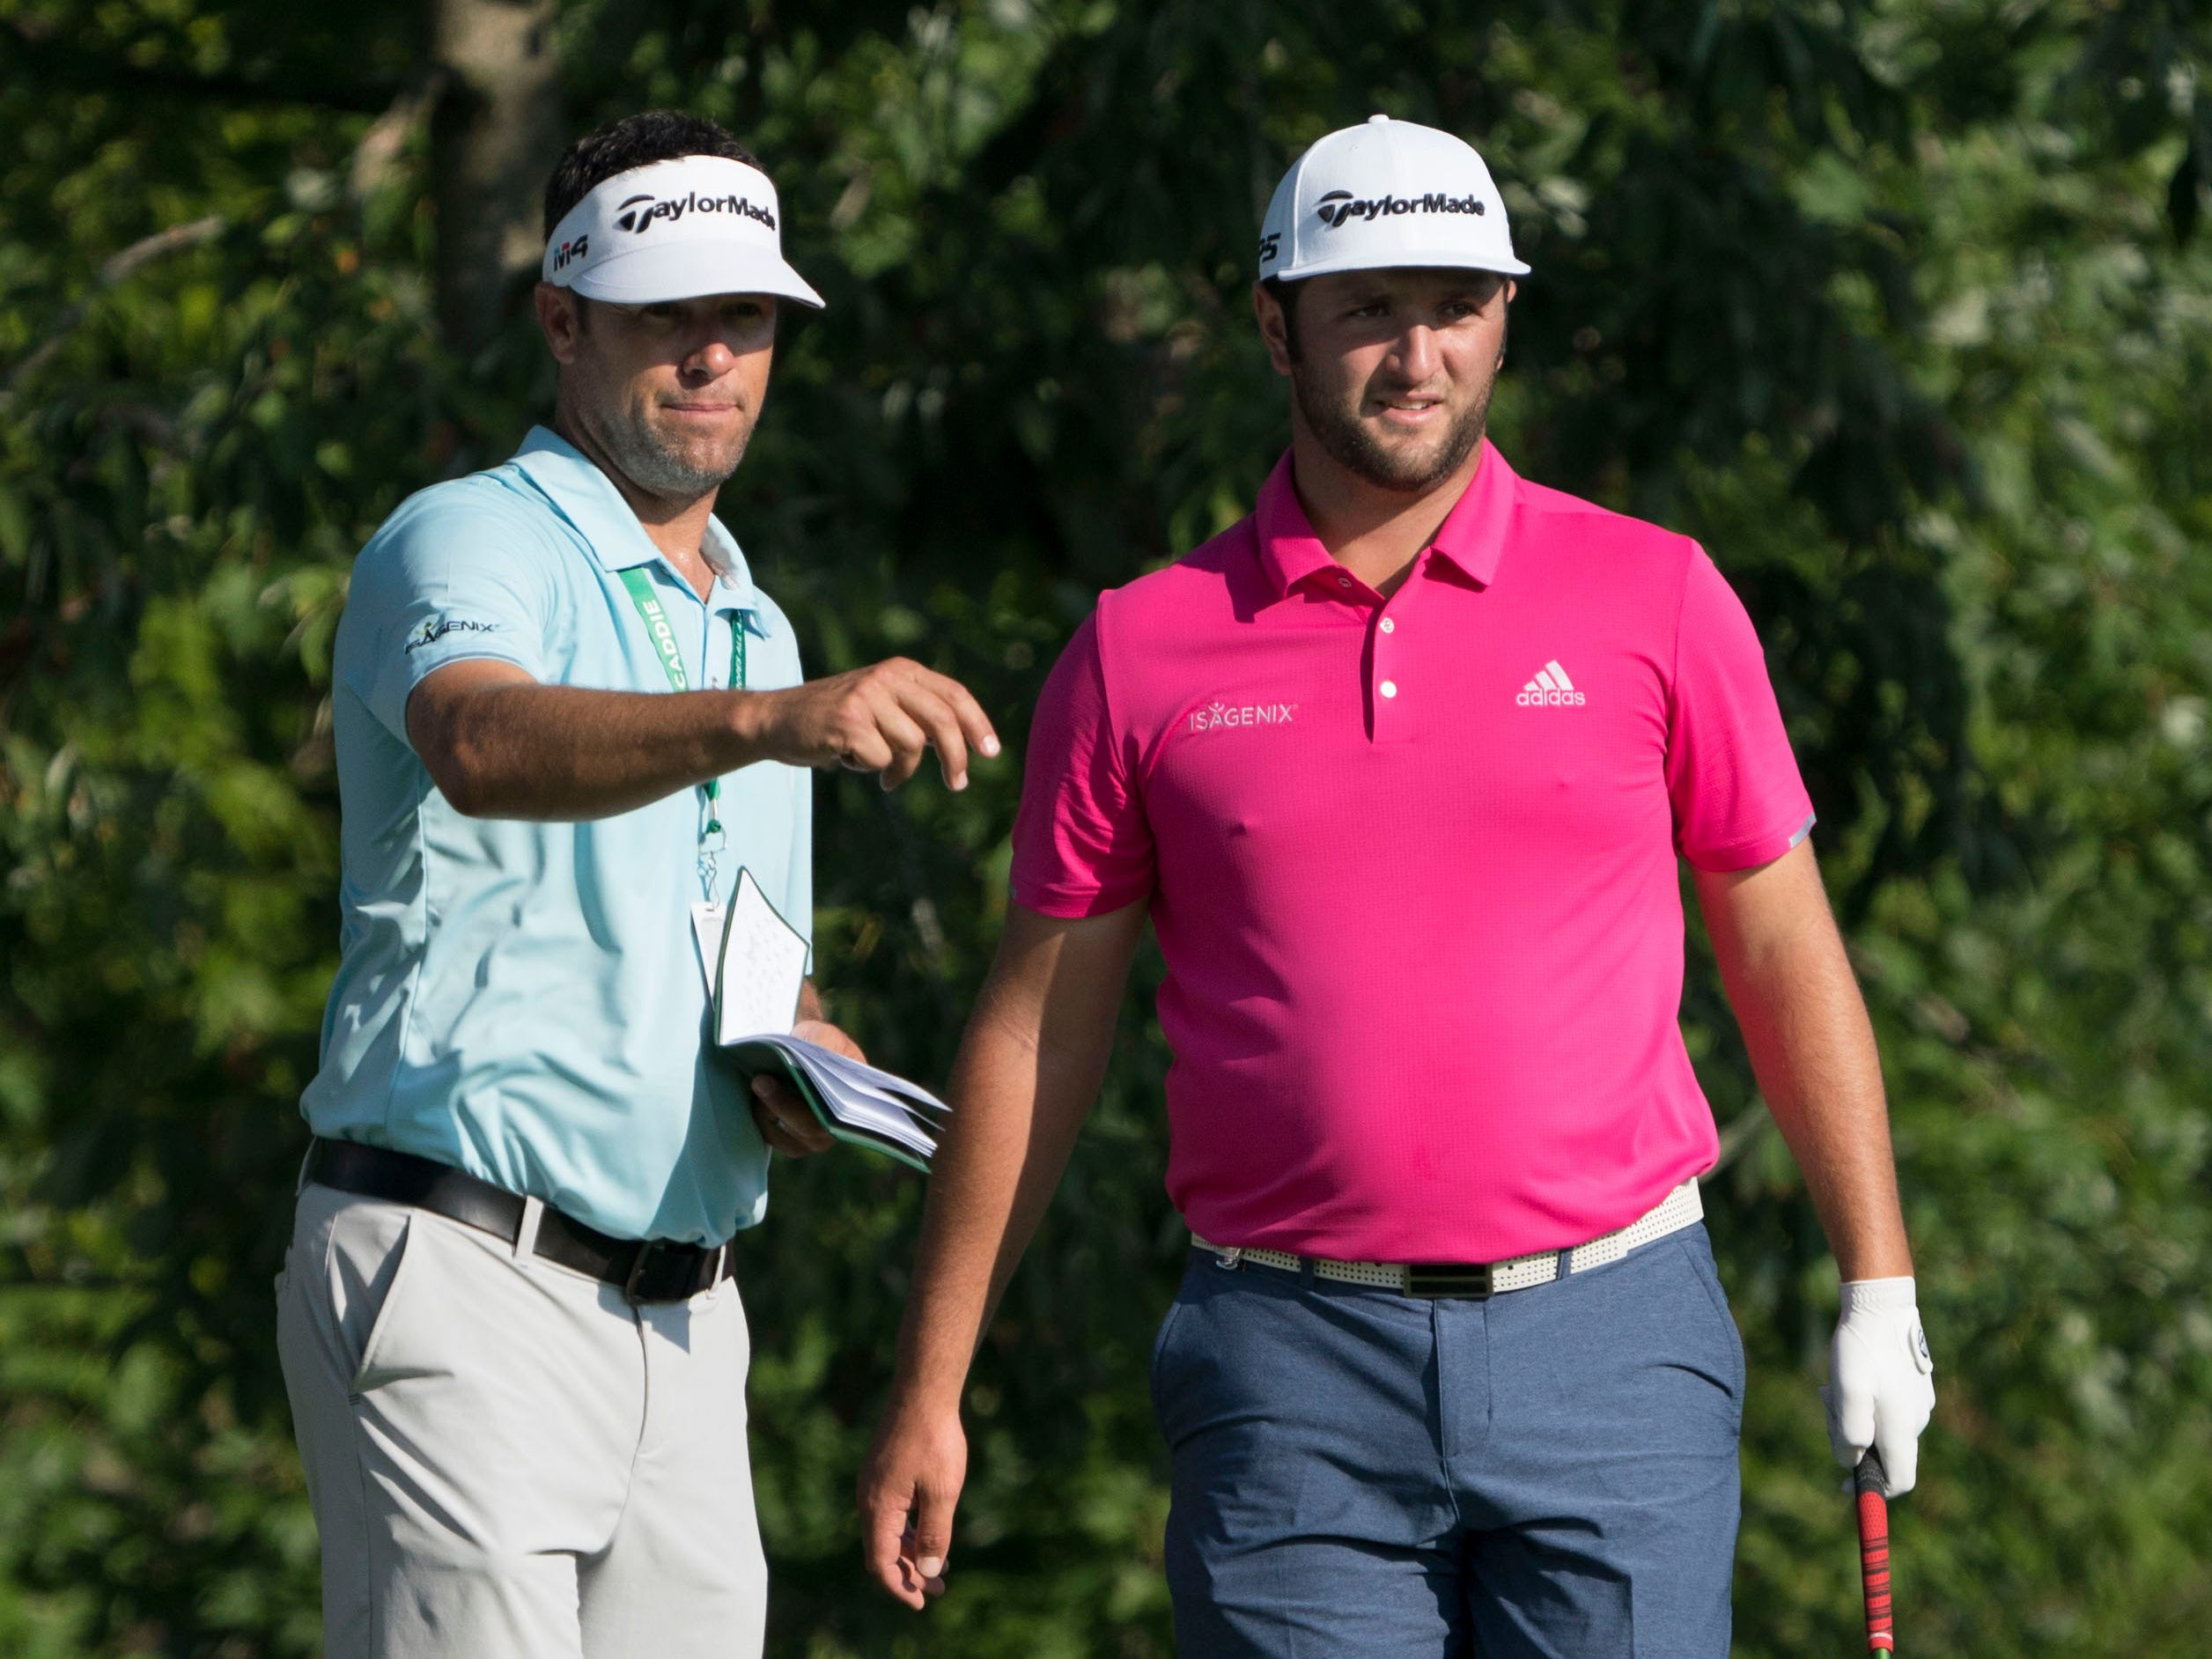 Jon Rahm (right) and caddie Adam Hayes at the No. 8 tee.